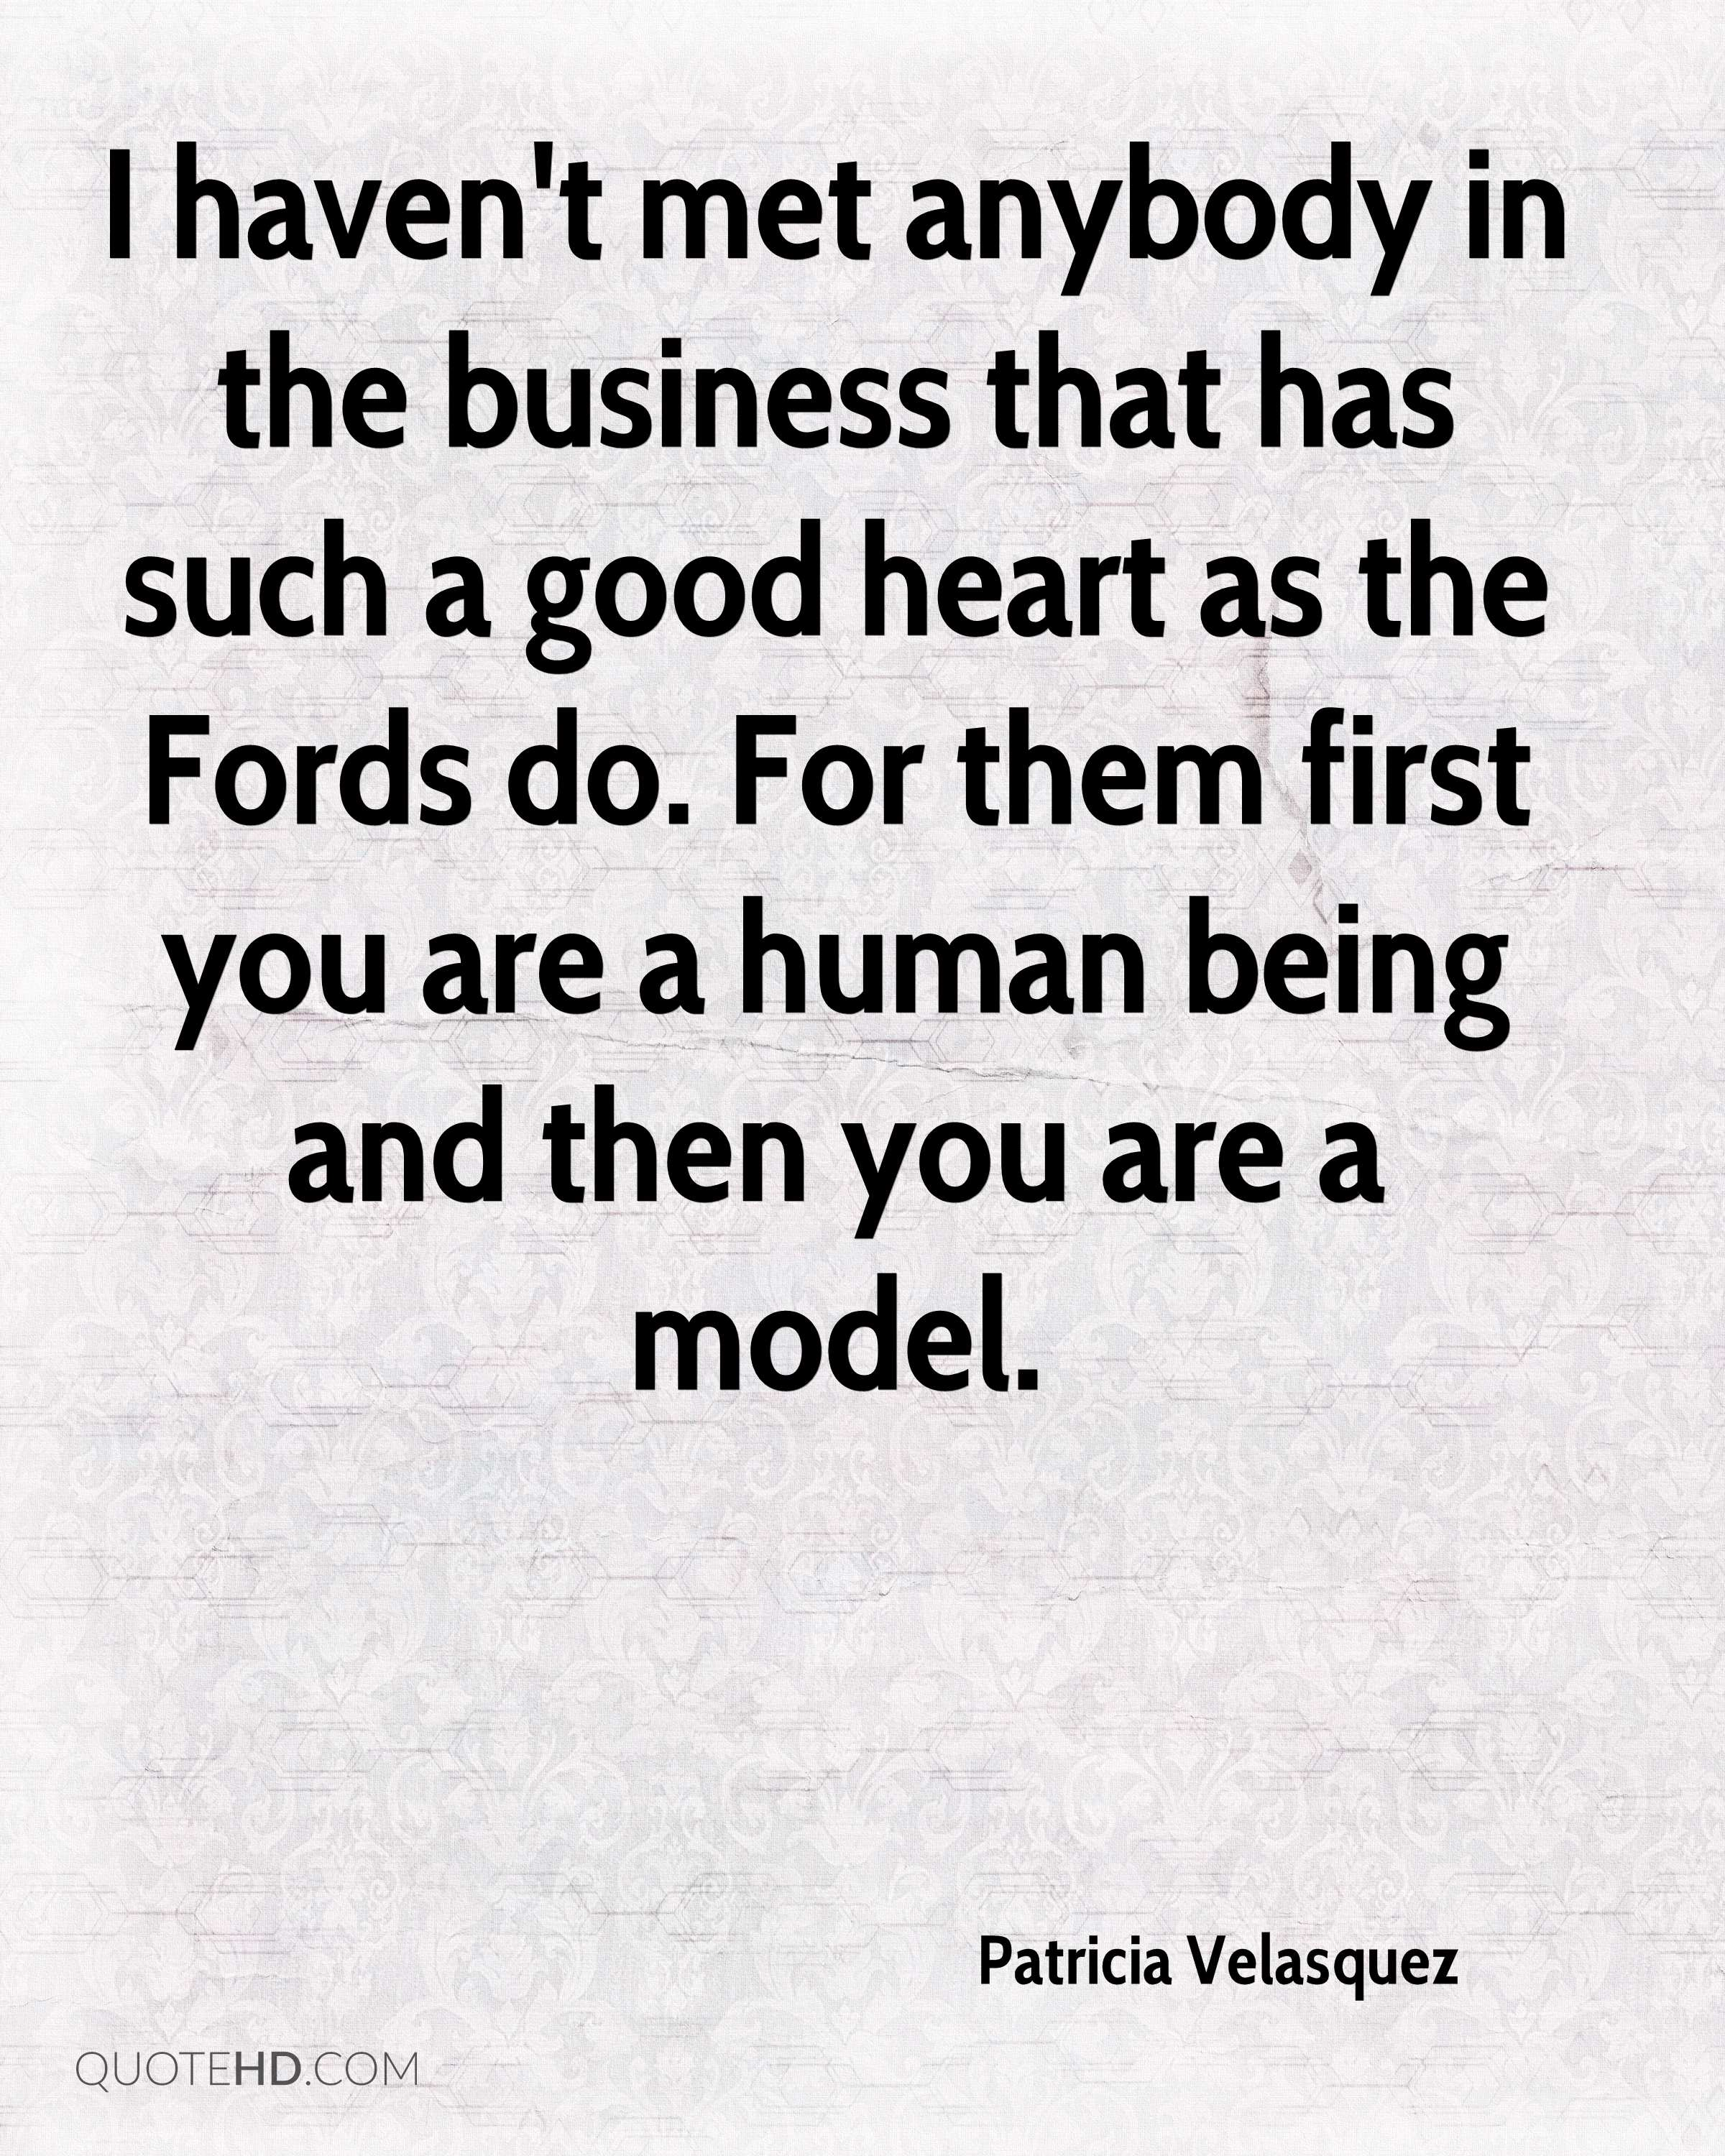 I haven't met anybody in the business that has such a good heart as the Fords do. For them first you are a human being and then you are a model.